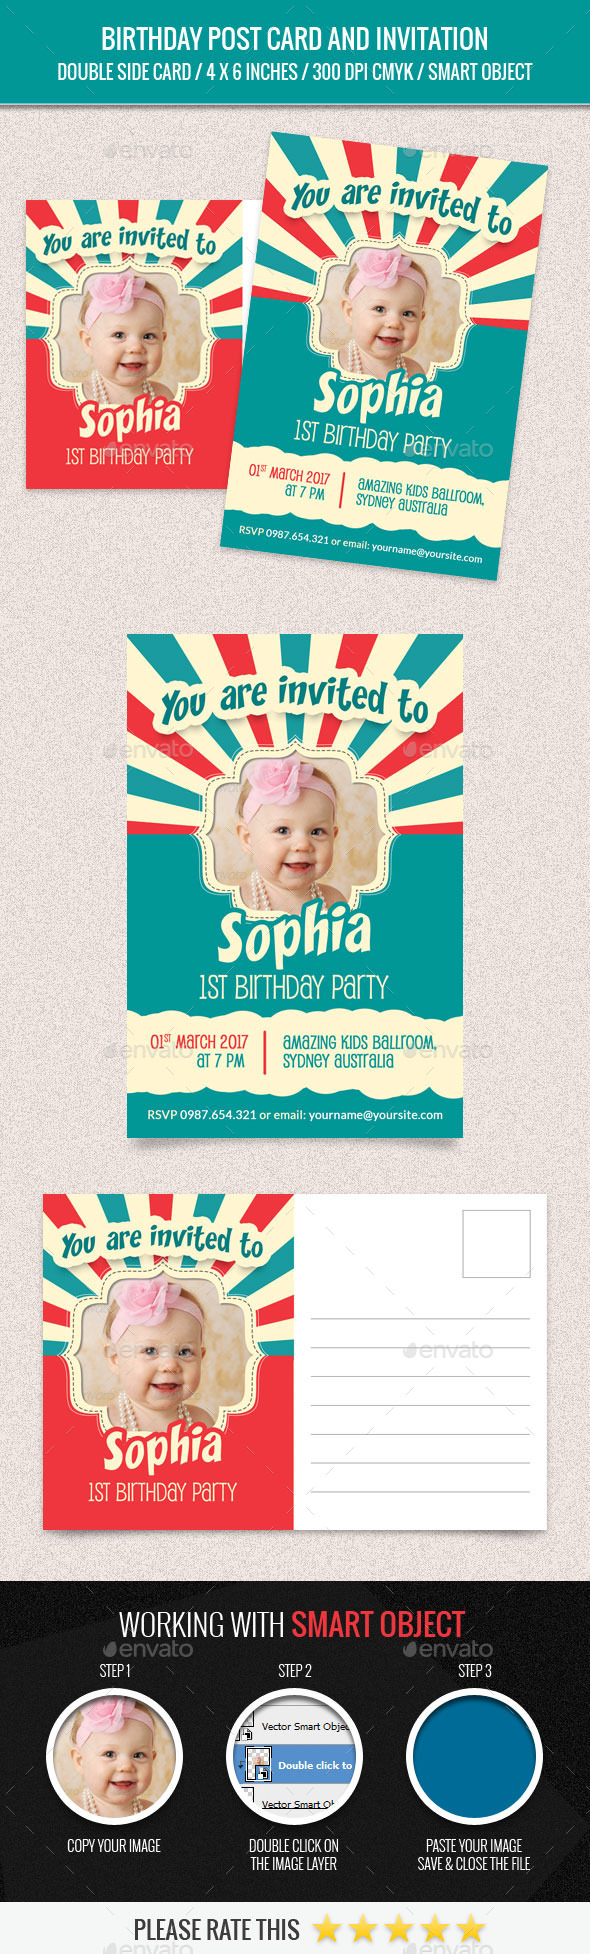 Birthday Post Card and Invitation Card Template - Birthday Greeting Cards